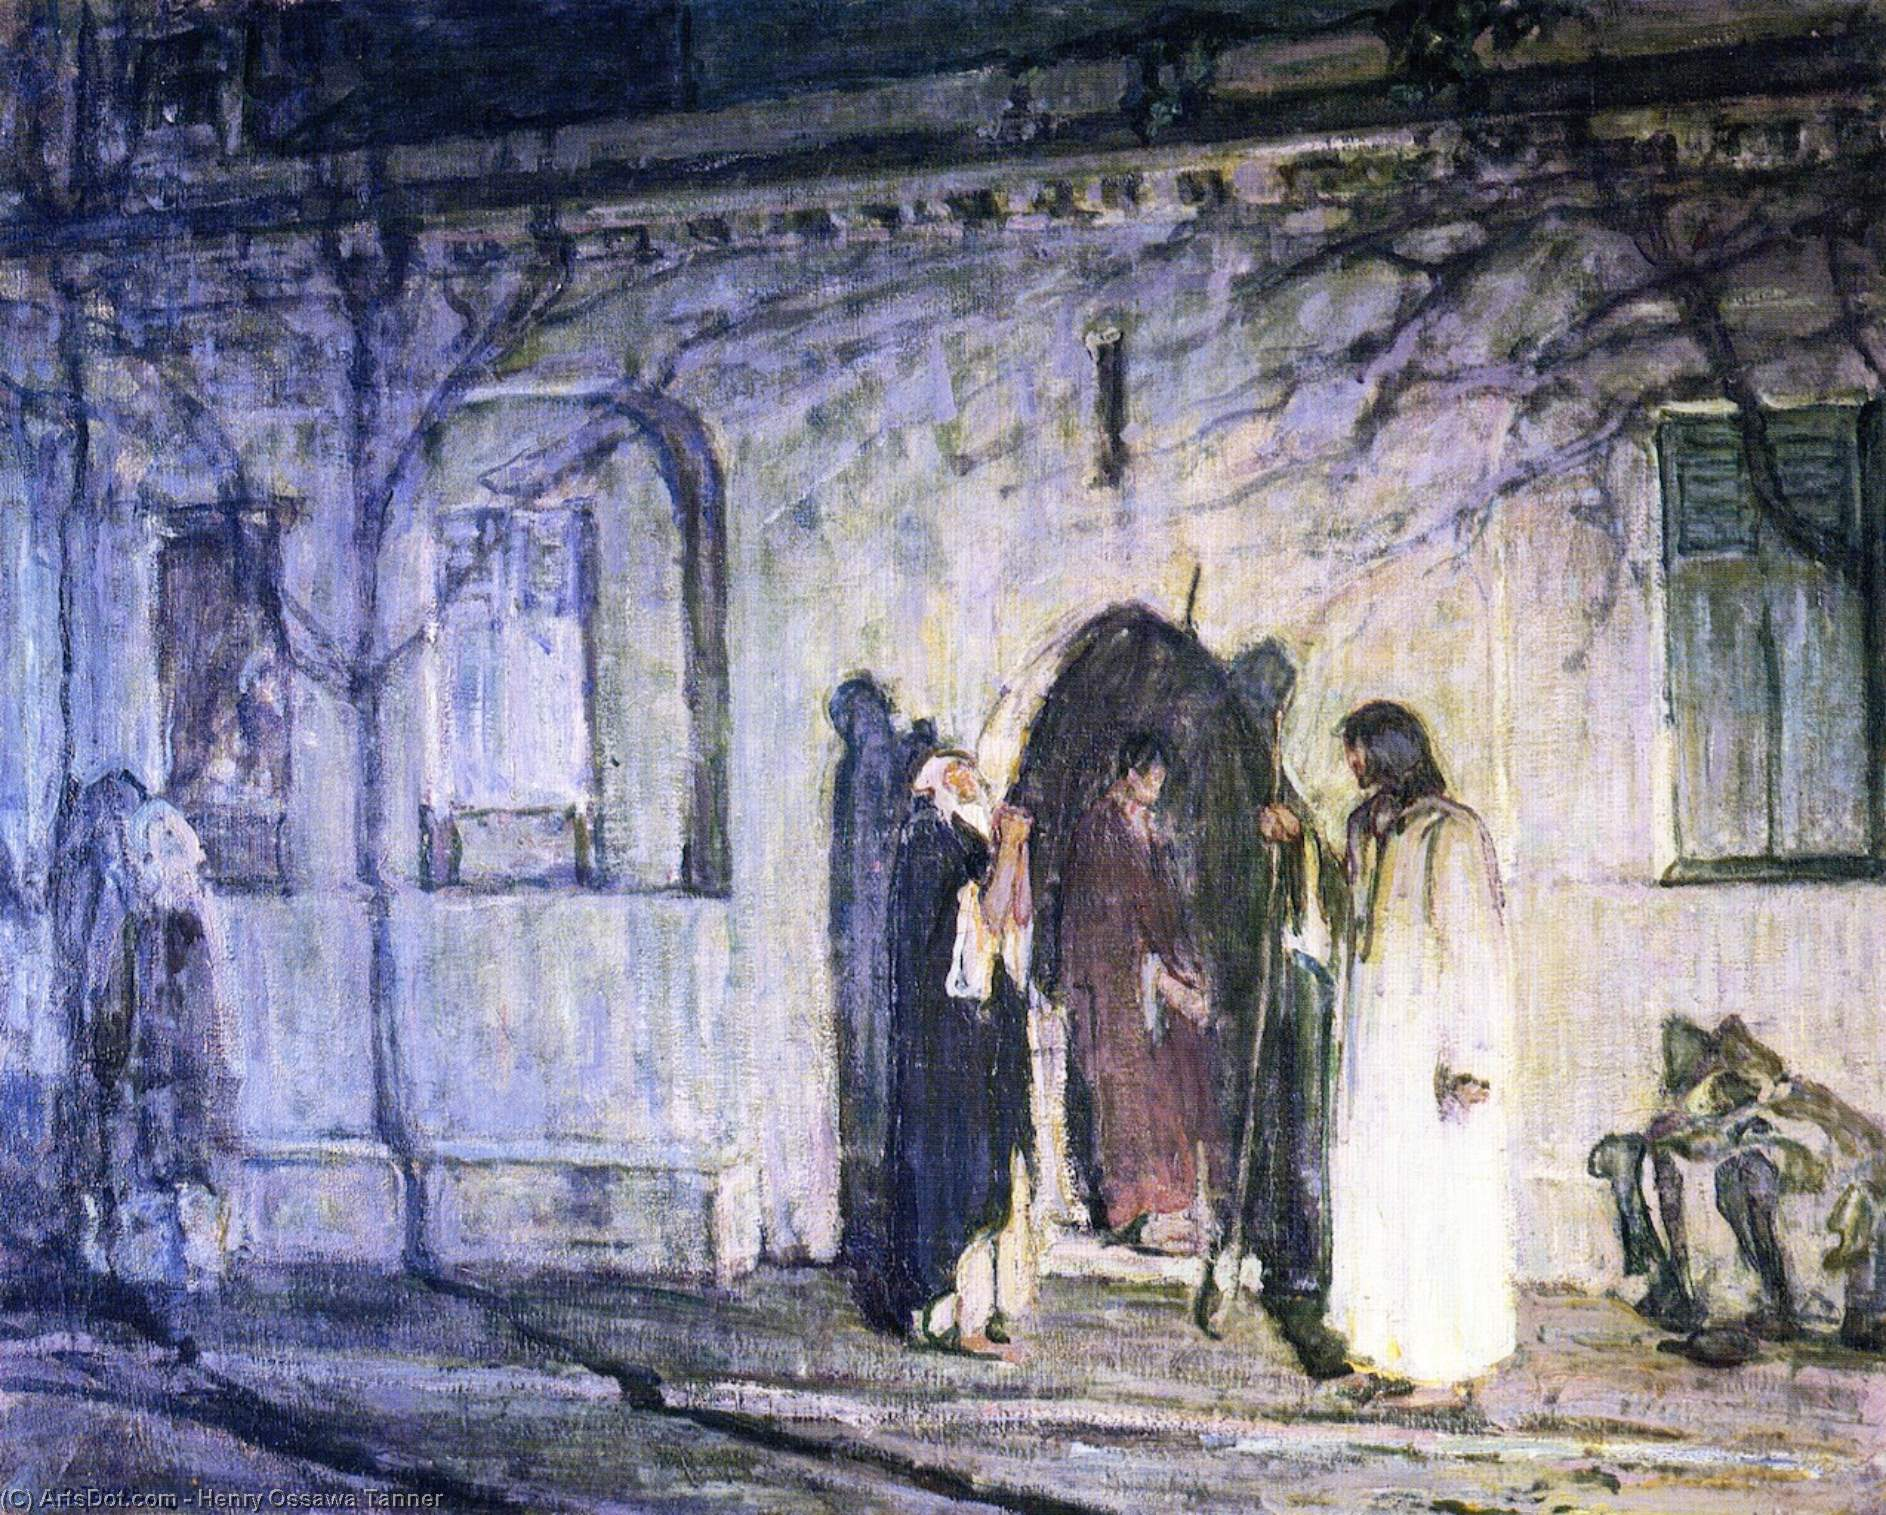 Christ with the Canaanite Woman and Her Daughter, Oil On Canvas by Henry Ossawa Tanner (1859-1937, United States)